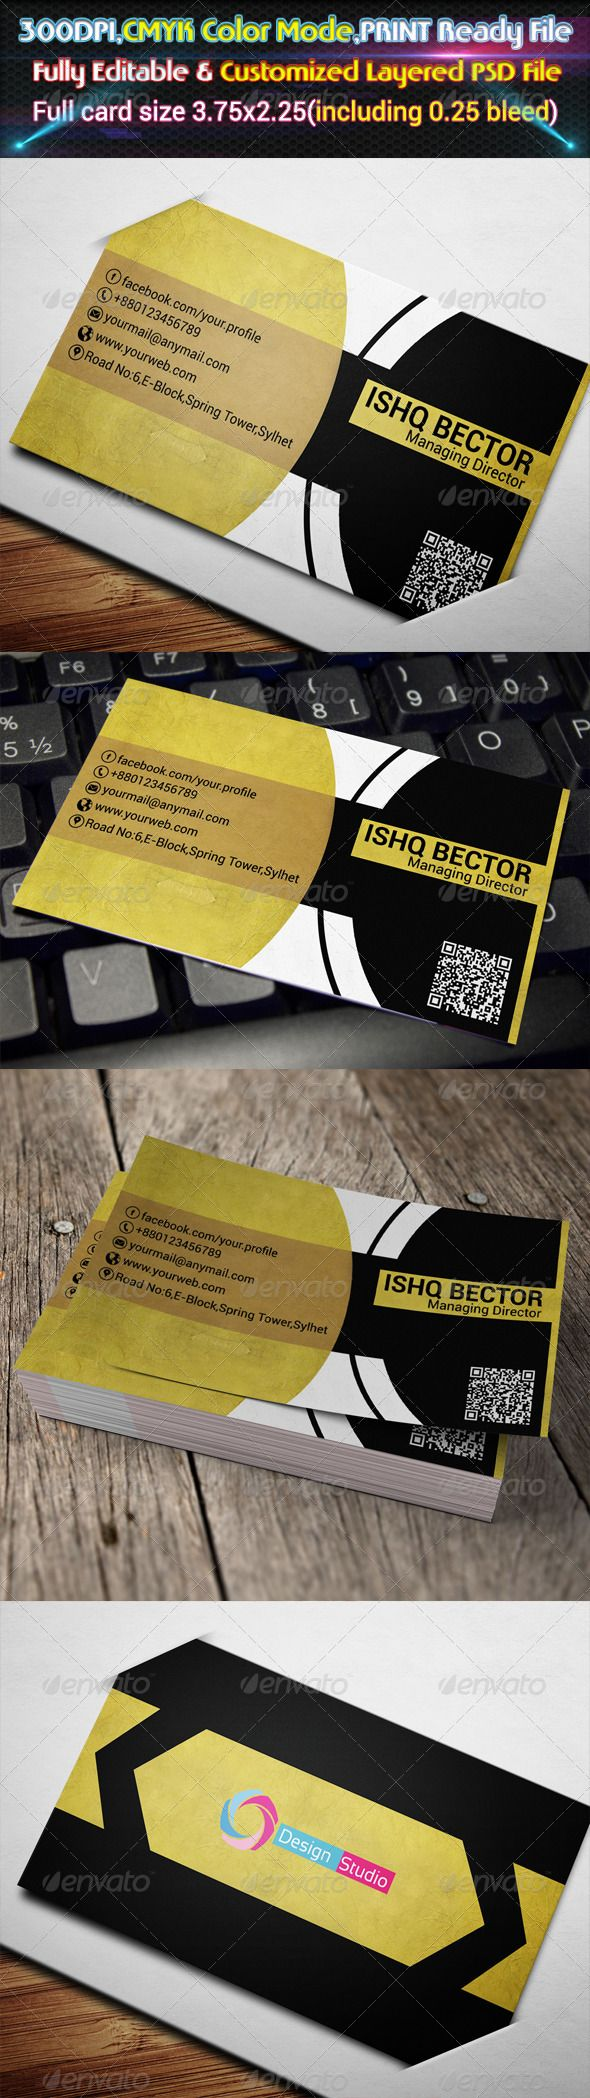 Corporate business card corporate business business cards and corporate business card reheart Image collections